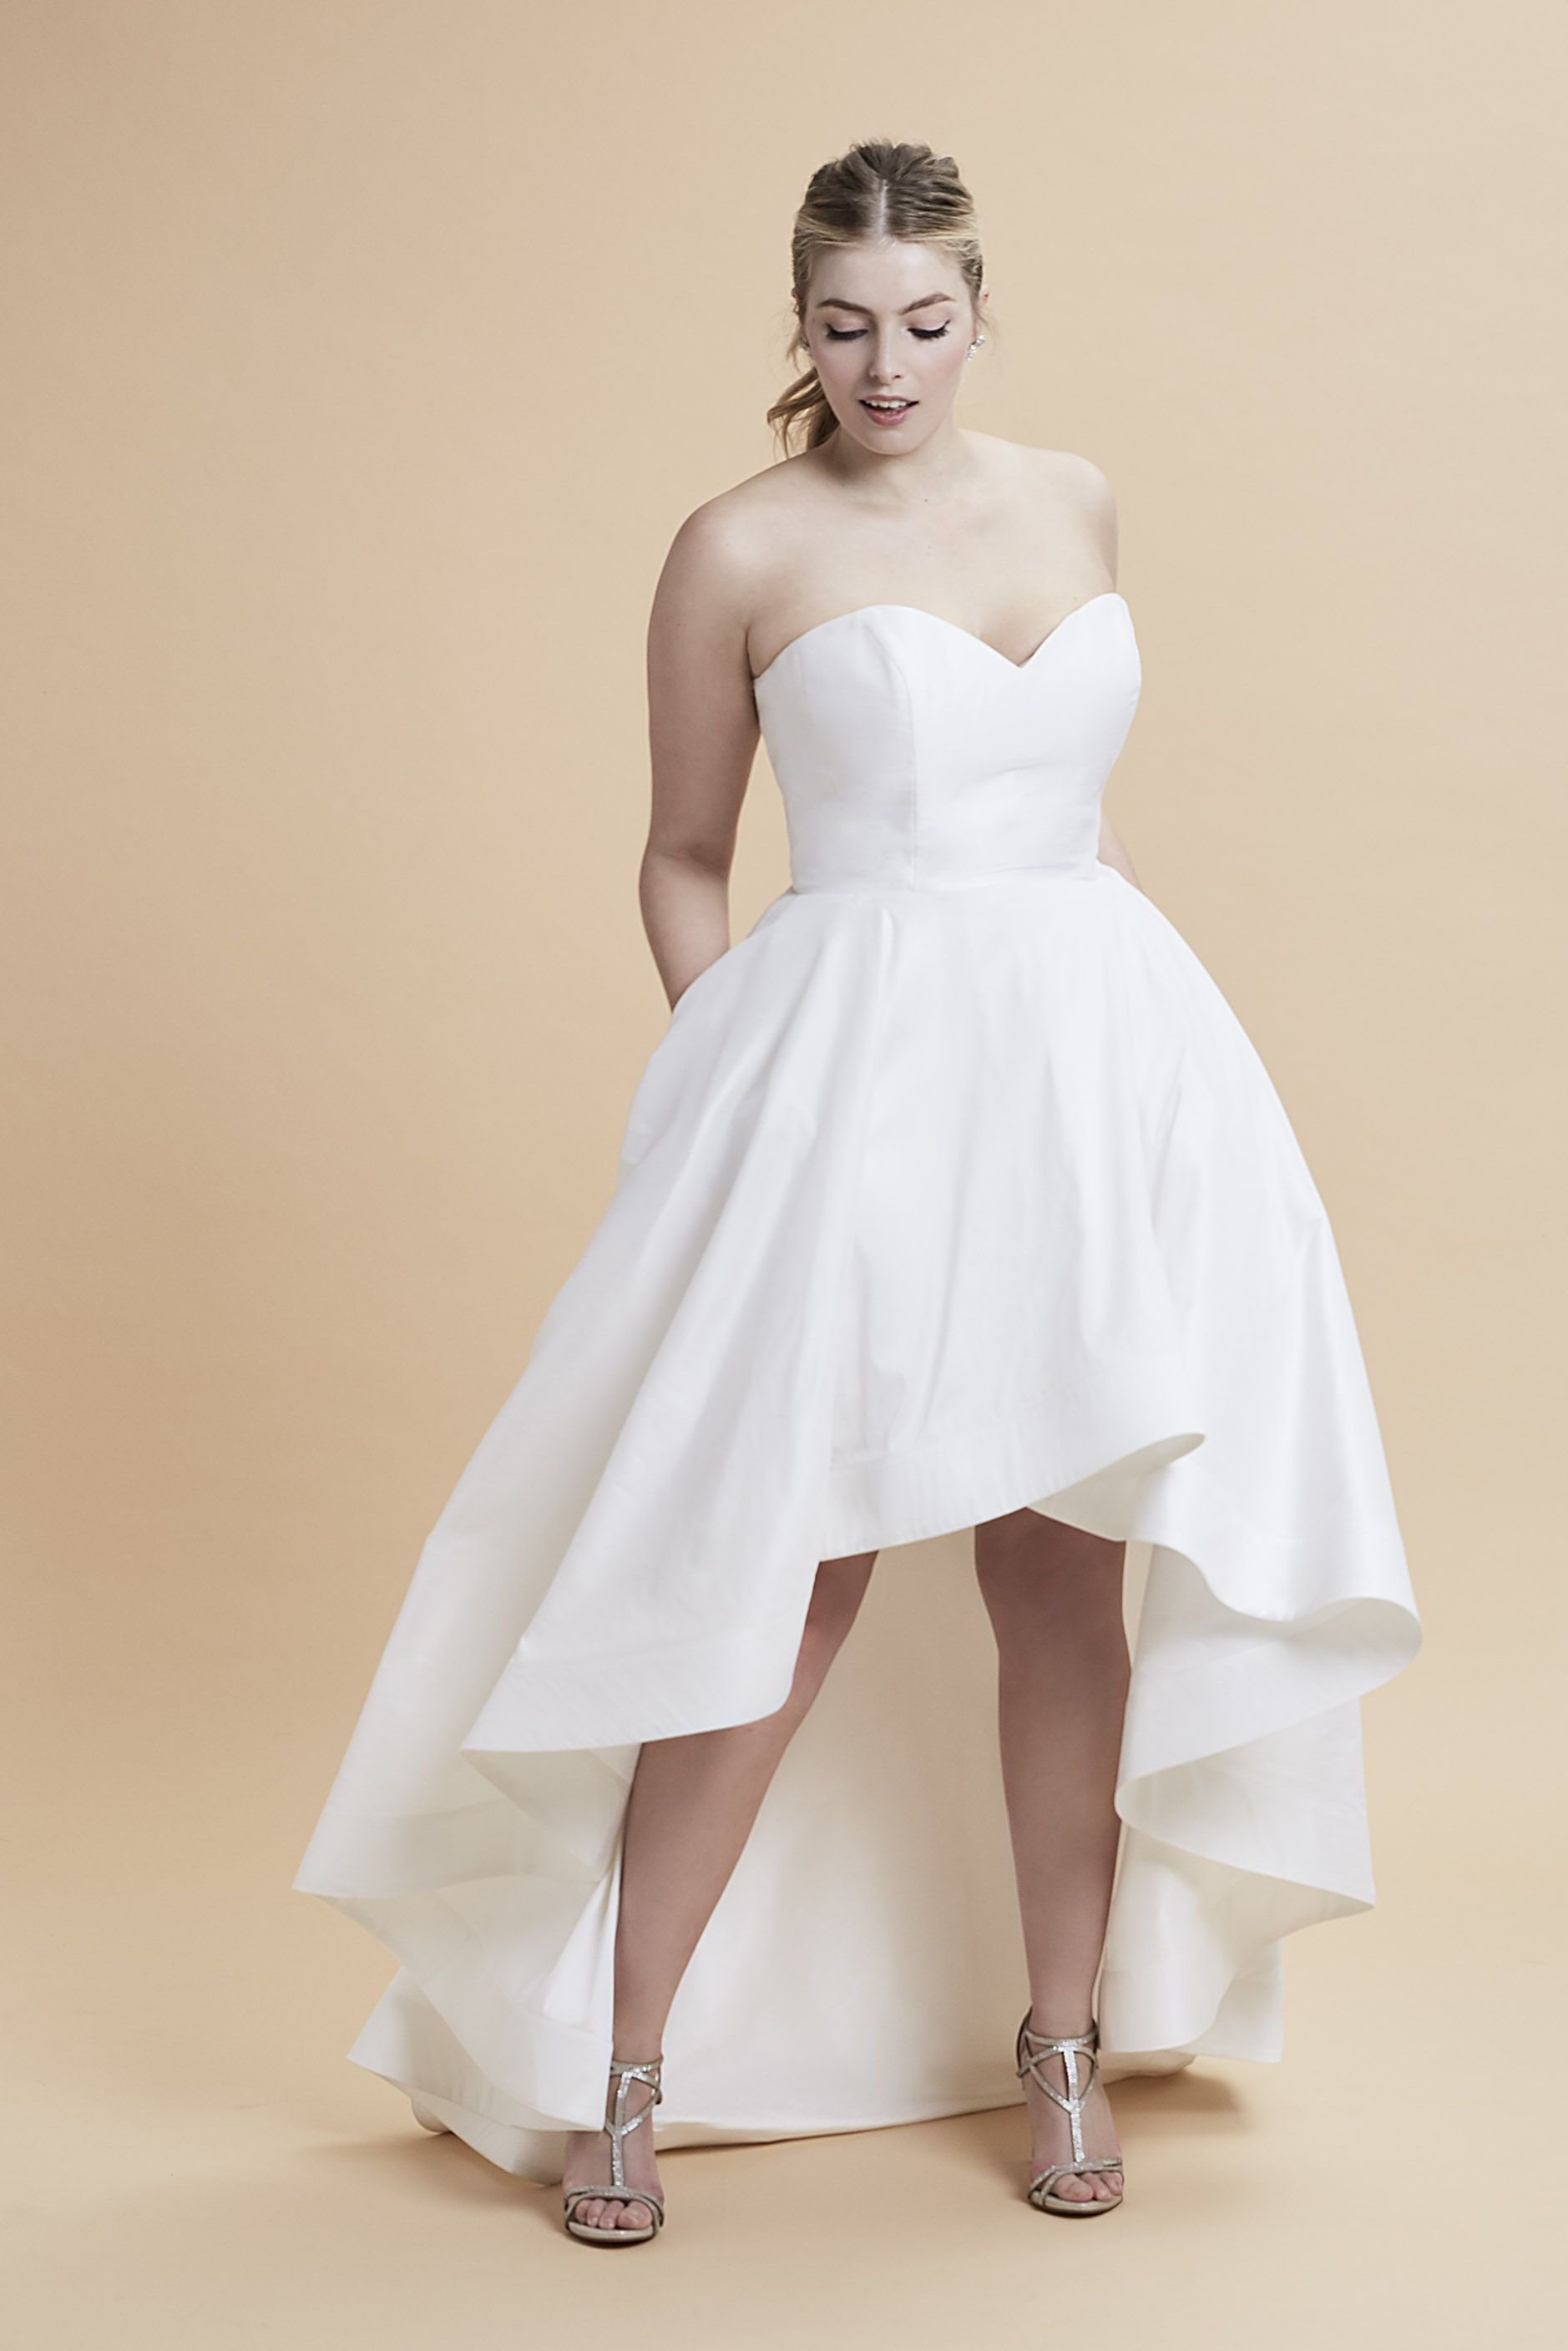 The Perfect Gown For A Second Dress Change At The Wedding Reception